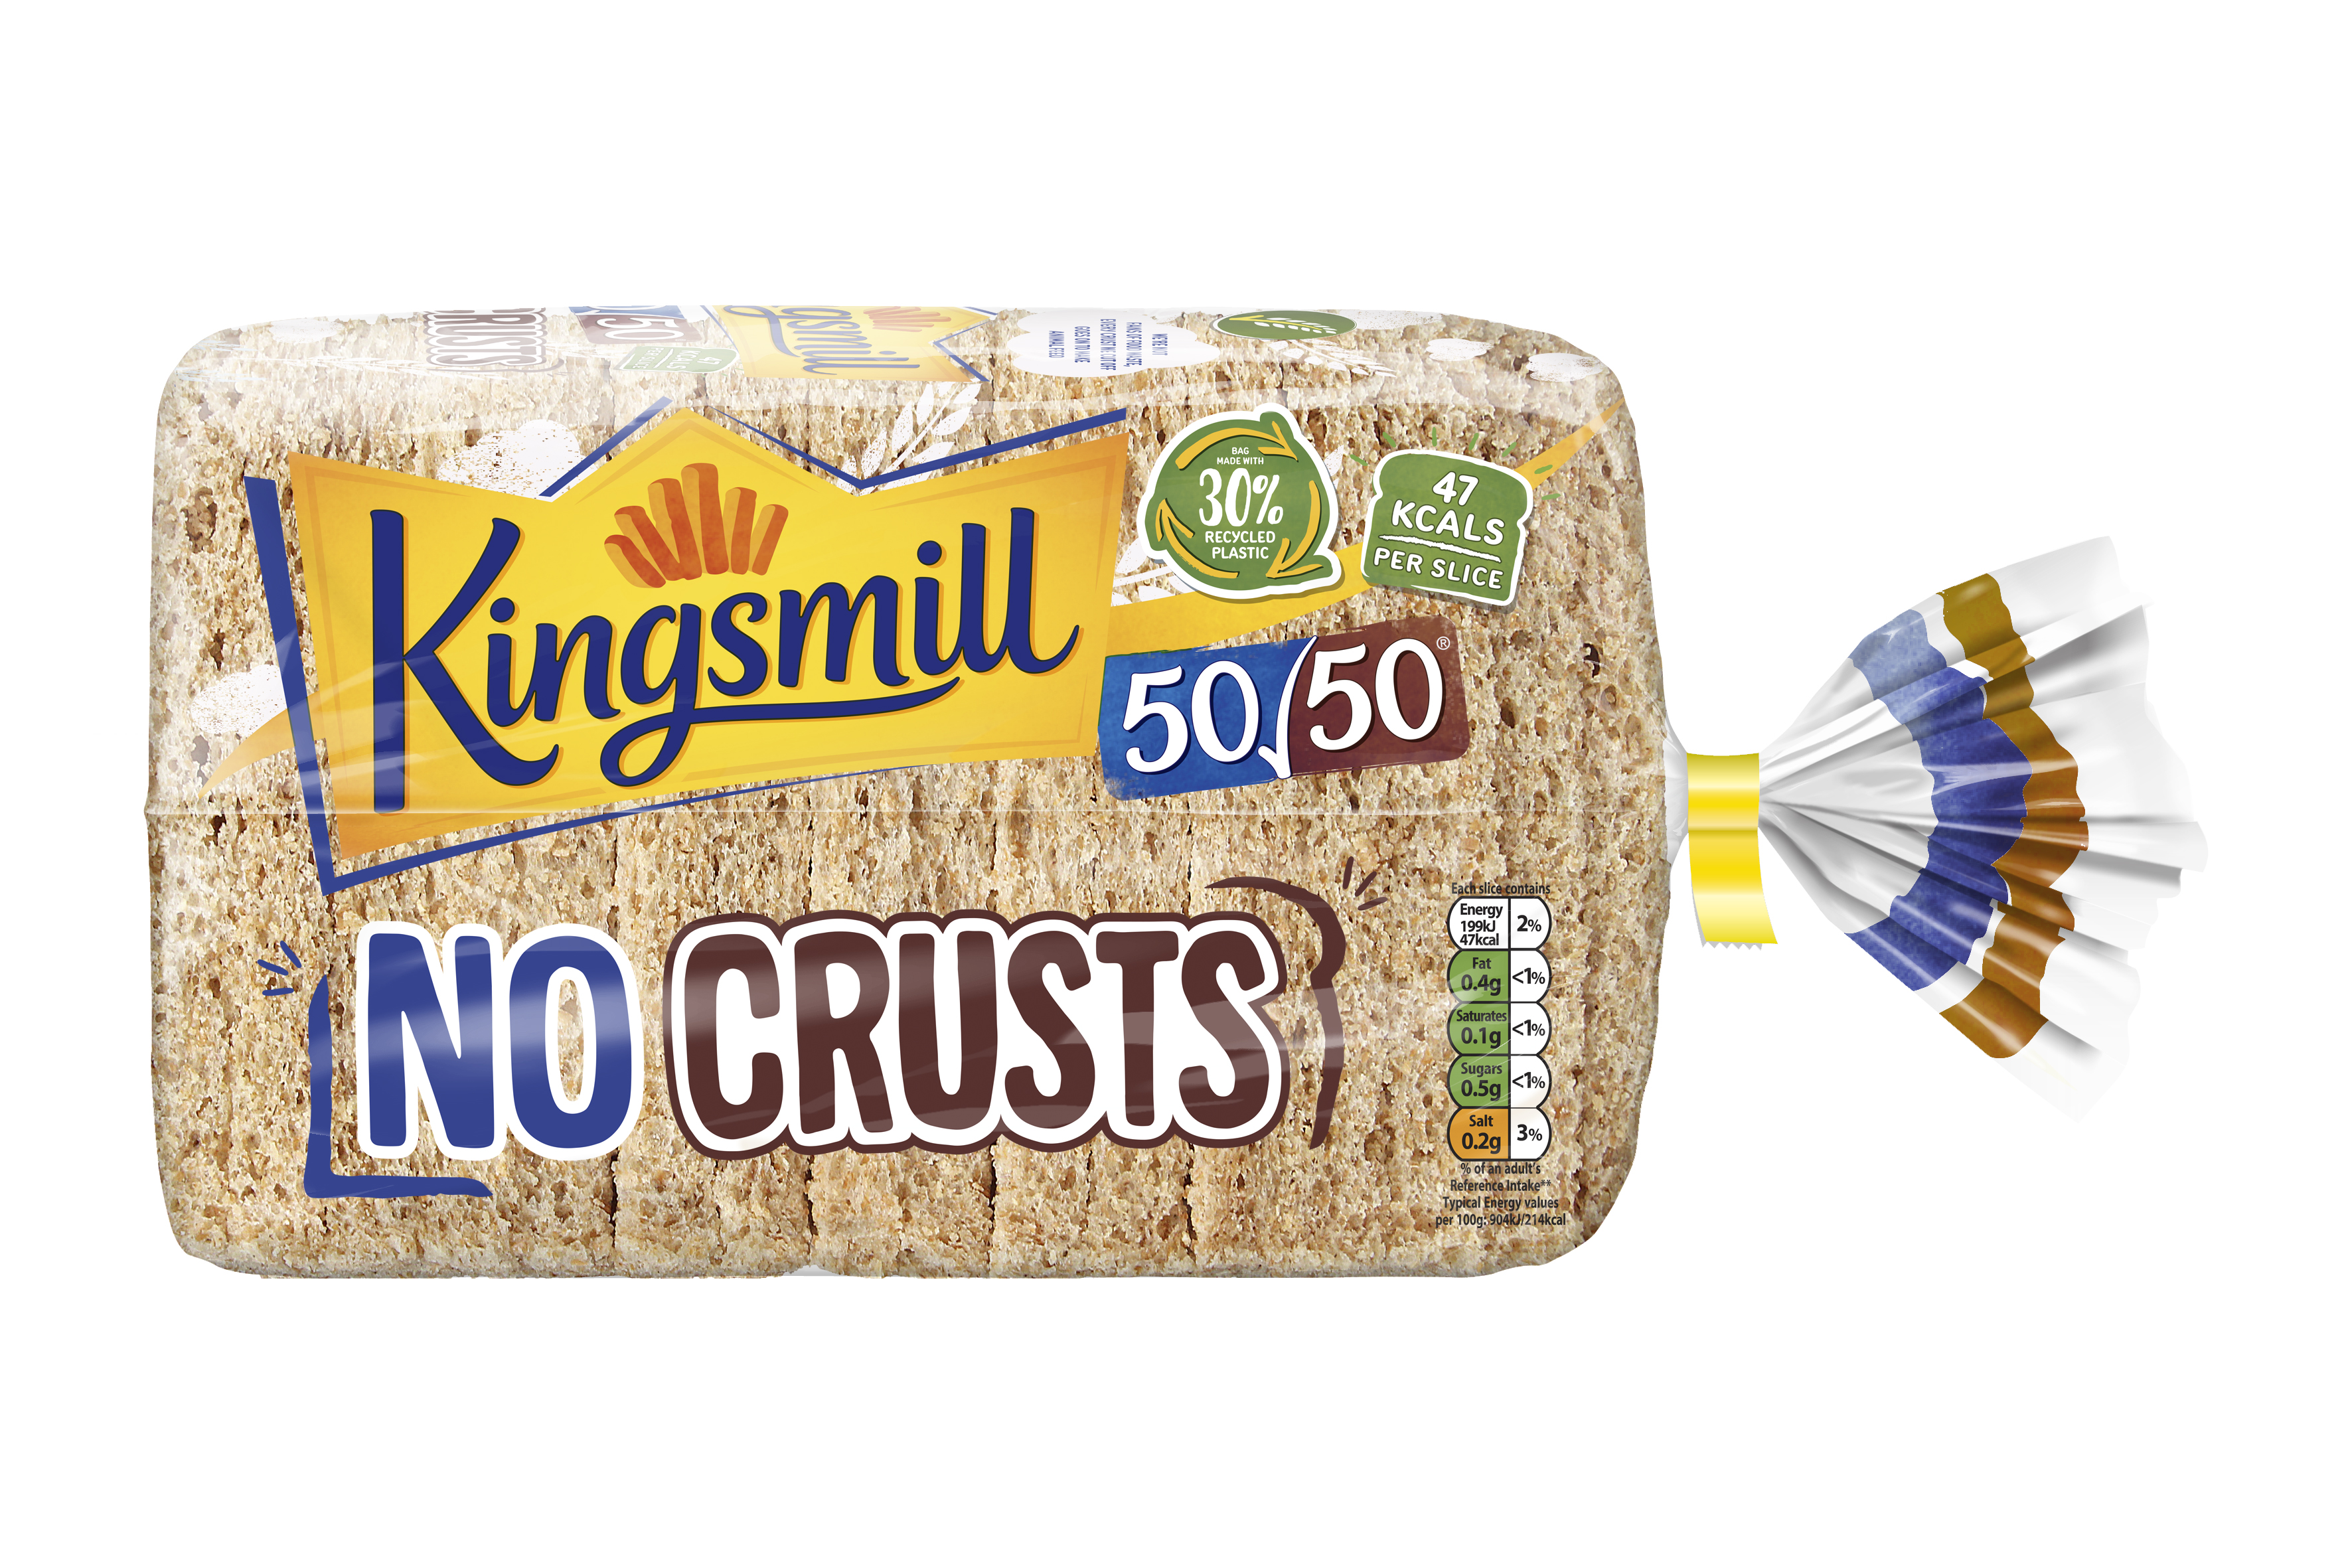 SABIC, St. Johns Packaging and Kingsmill launch bread bag based on recycled post-consumer plastic